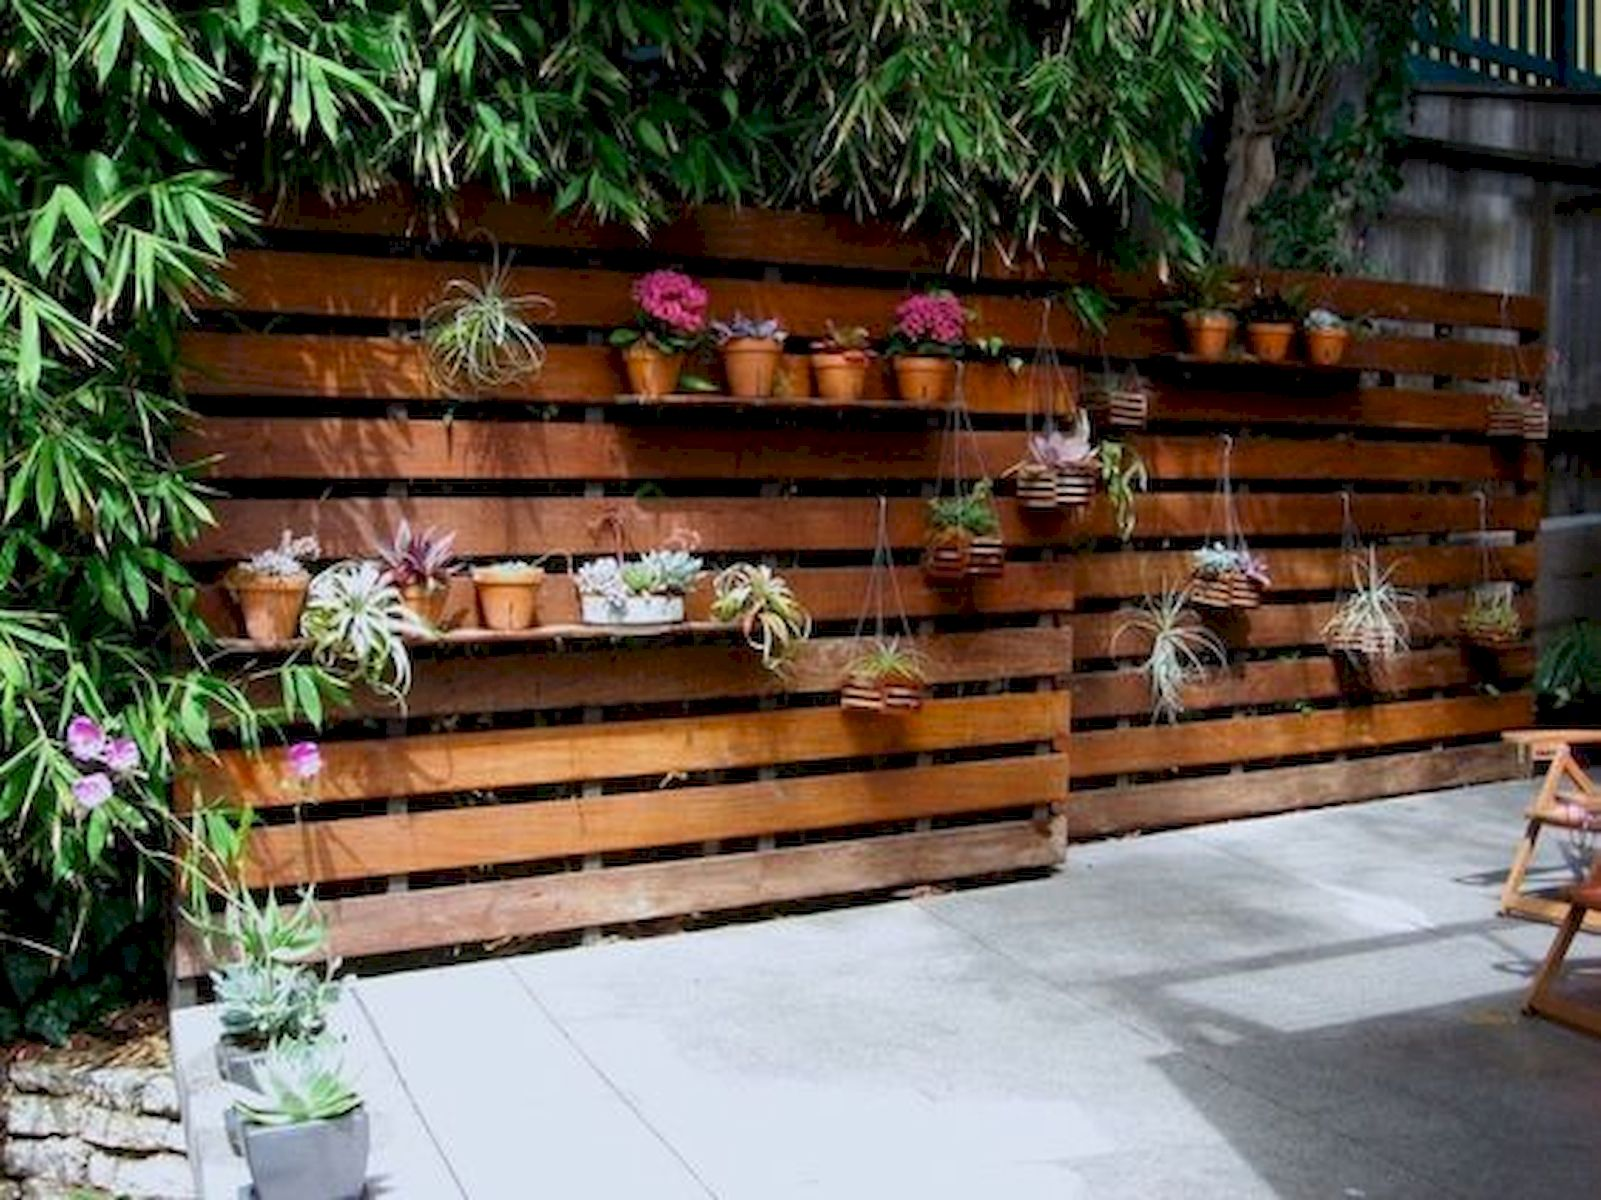 50 Awesome Modern Backyard Garden Design Ideas With Hanging Plants (30)